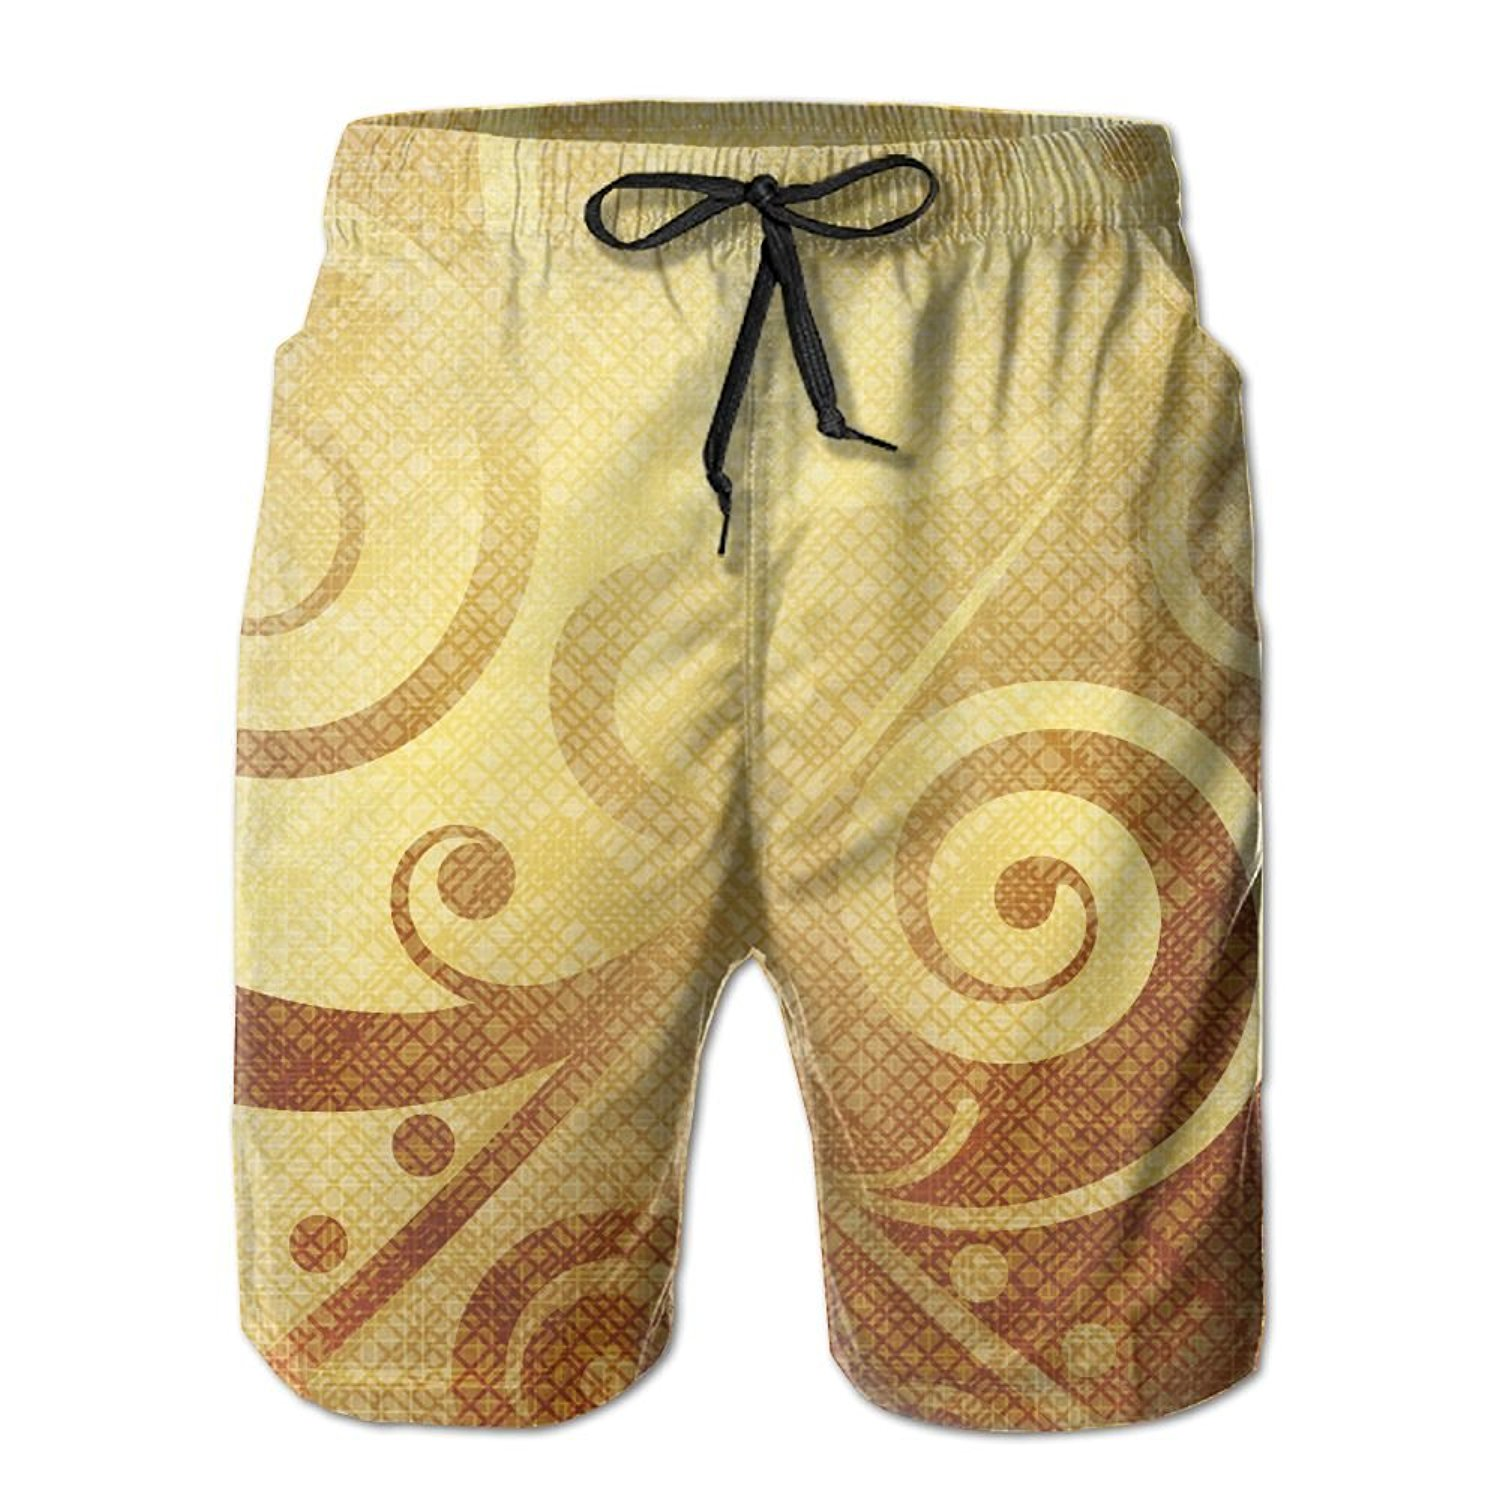 Richard-L Gold Canvas Design Floral Swirls Leaves Summer Quick Dry Board/Beach Shorts For Men